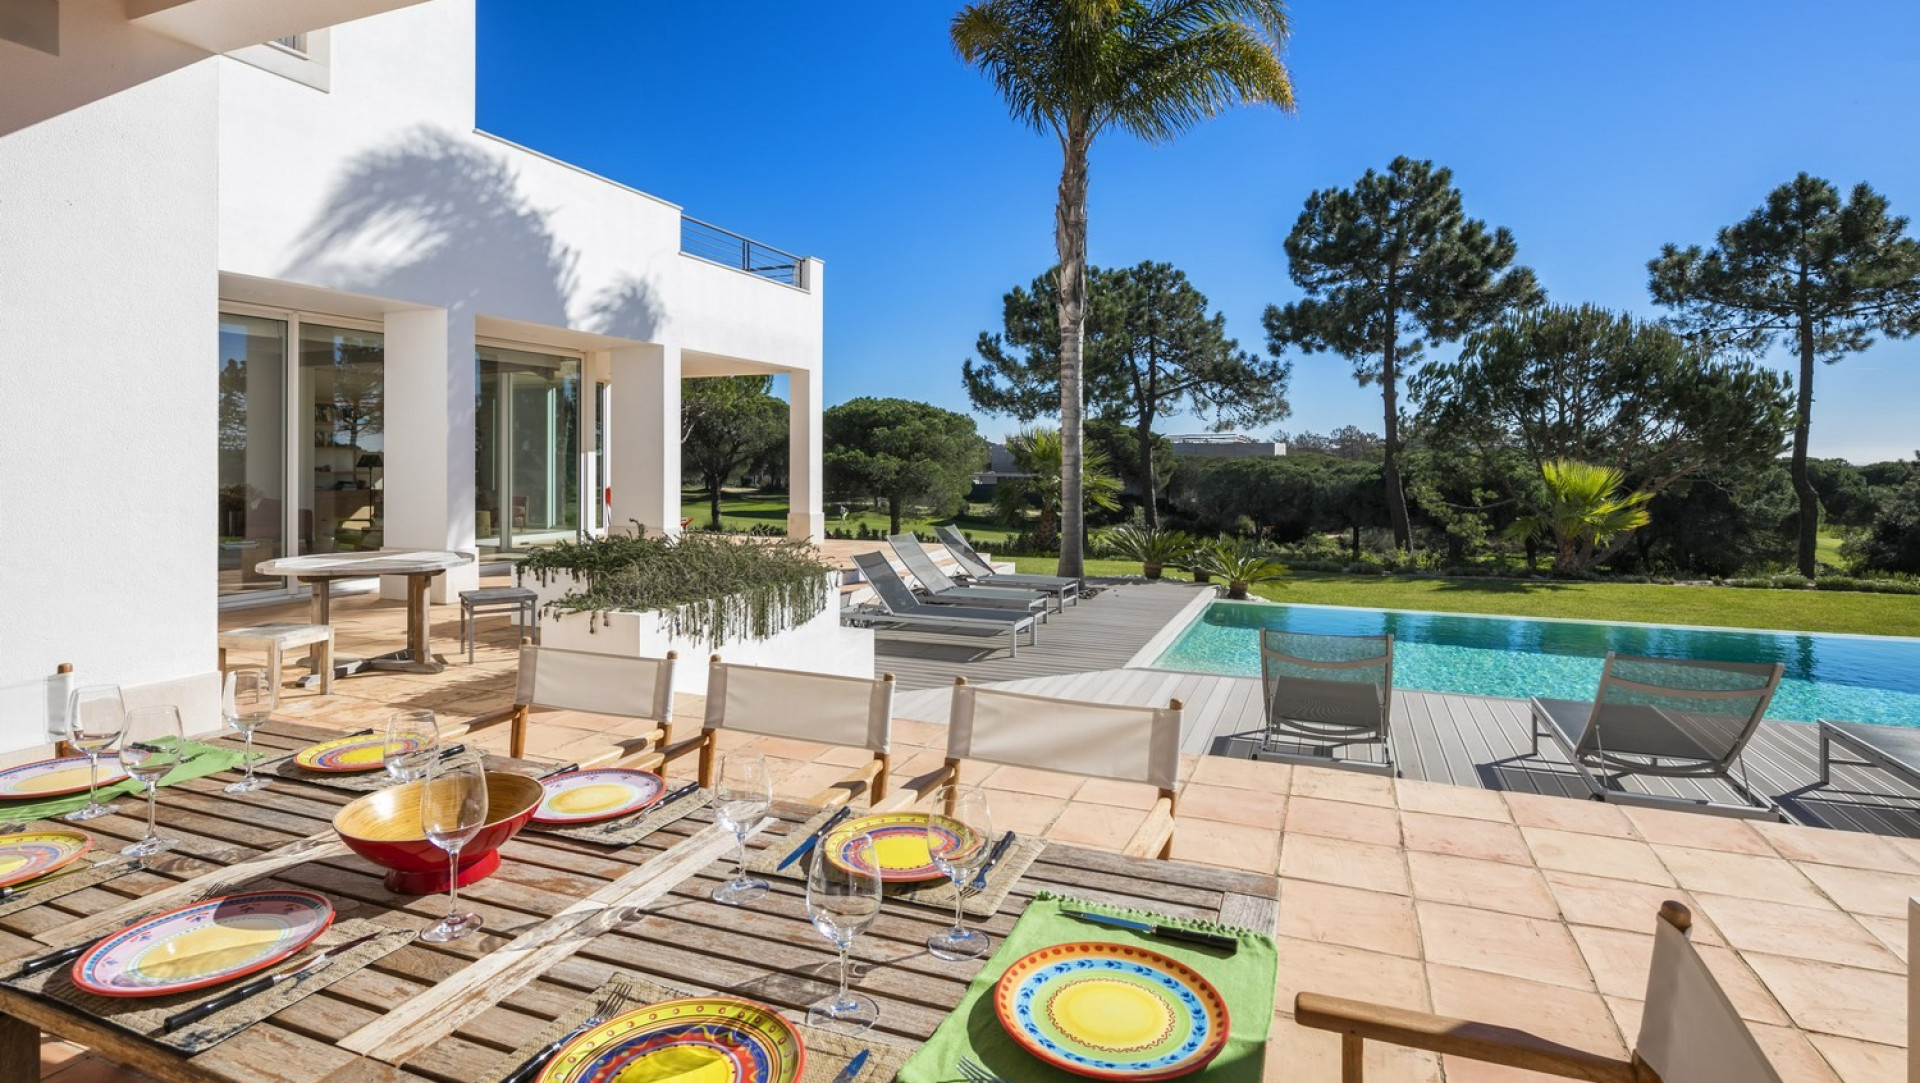 Algarve Holidays Luxury 4 Bedroom Villa Quinta do Lago With Private Pool And Golf Views